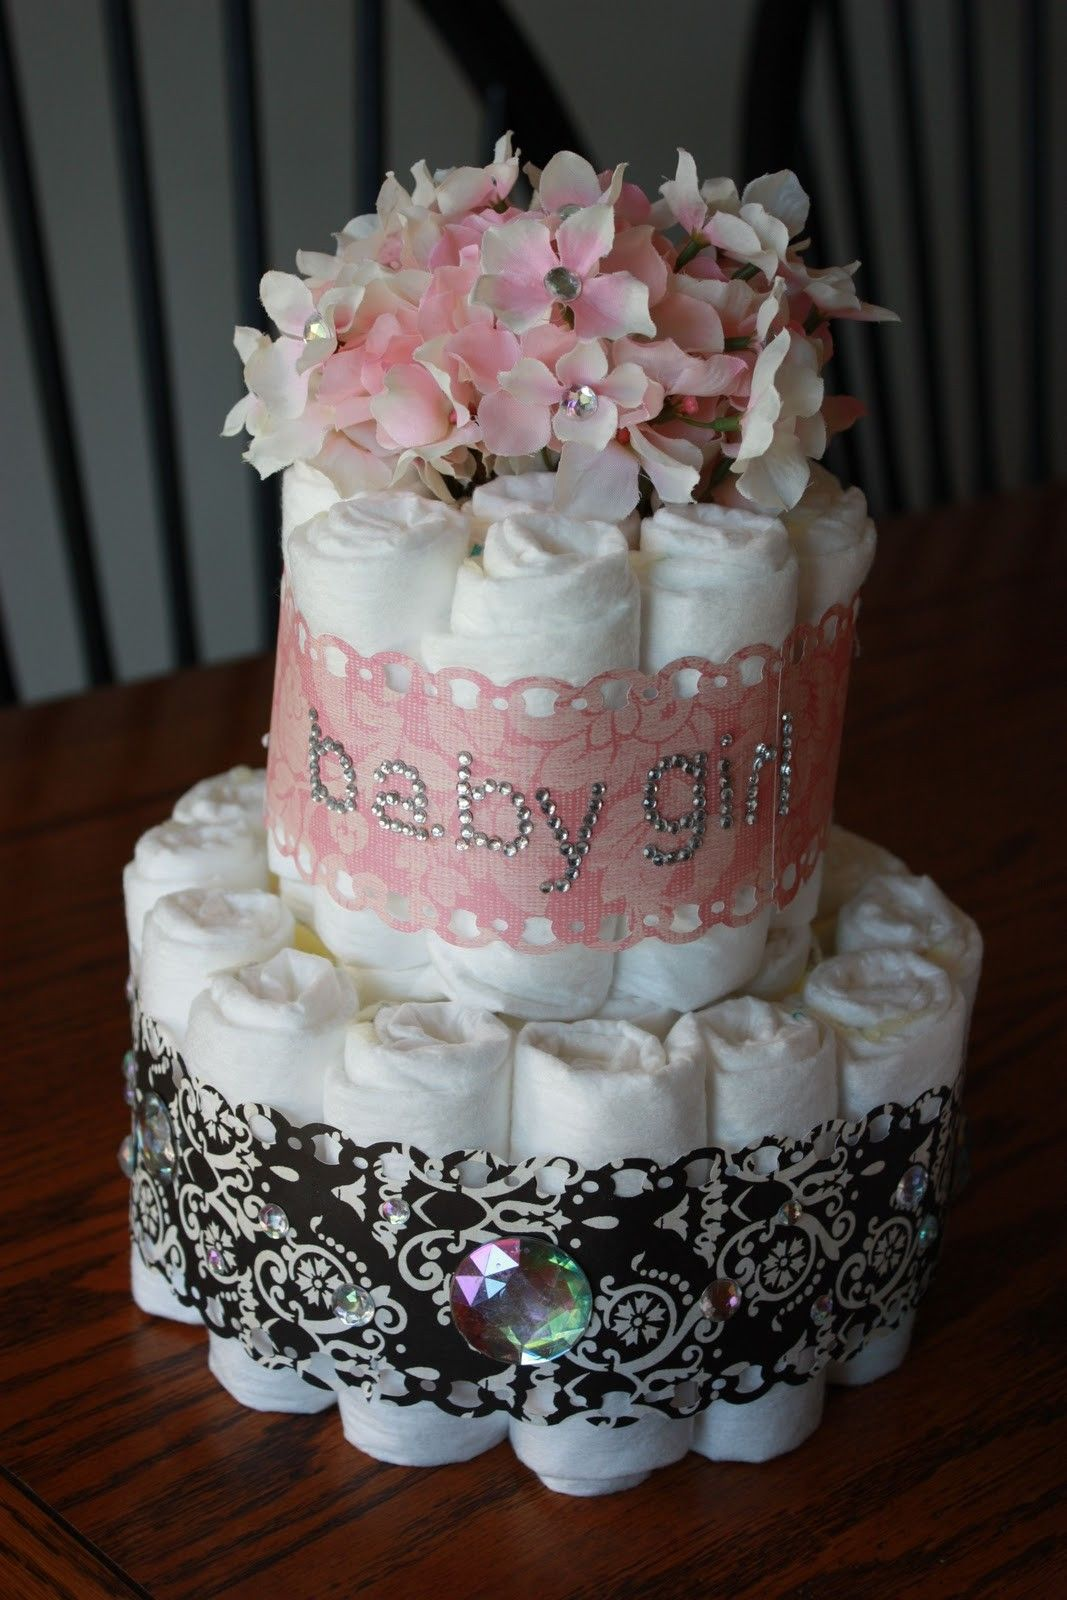 How To Make A Diaper Cake For A Baby Shower Out Of Diapers